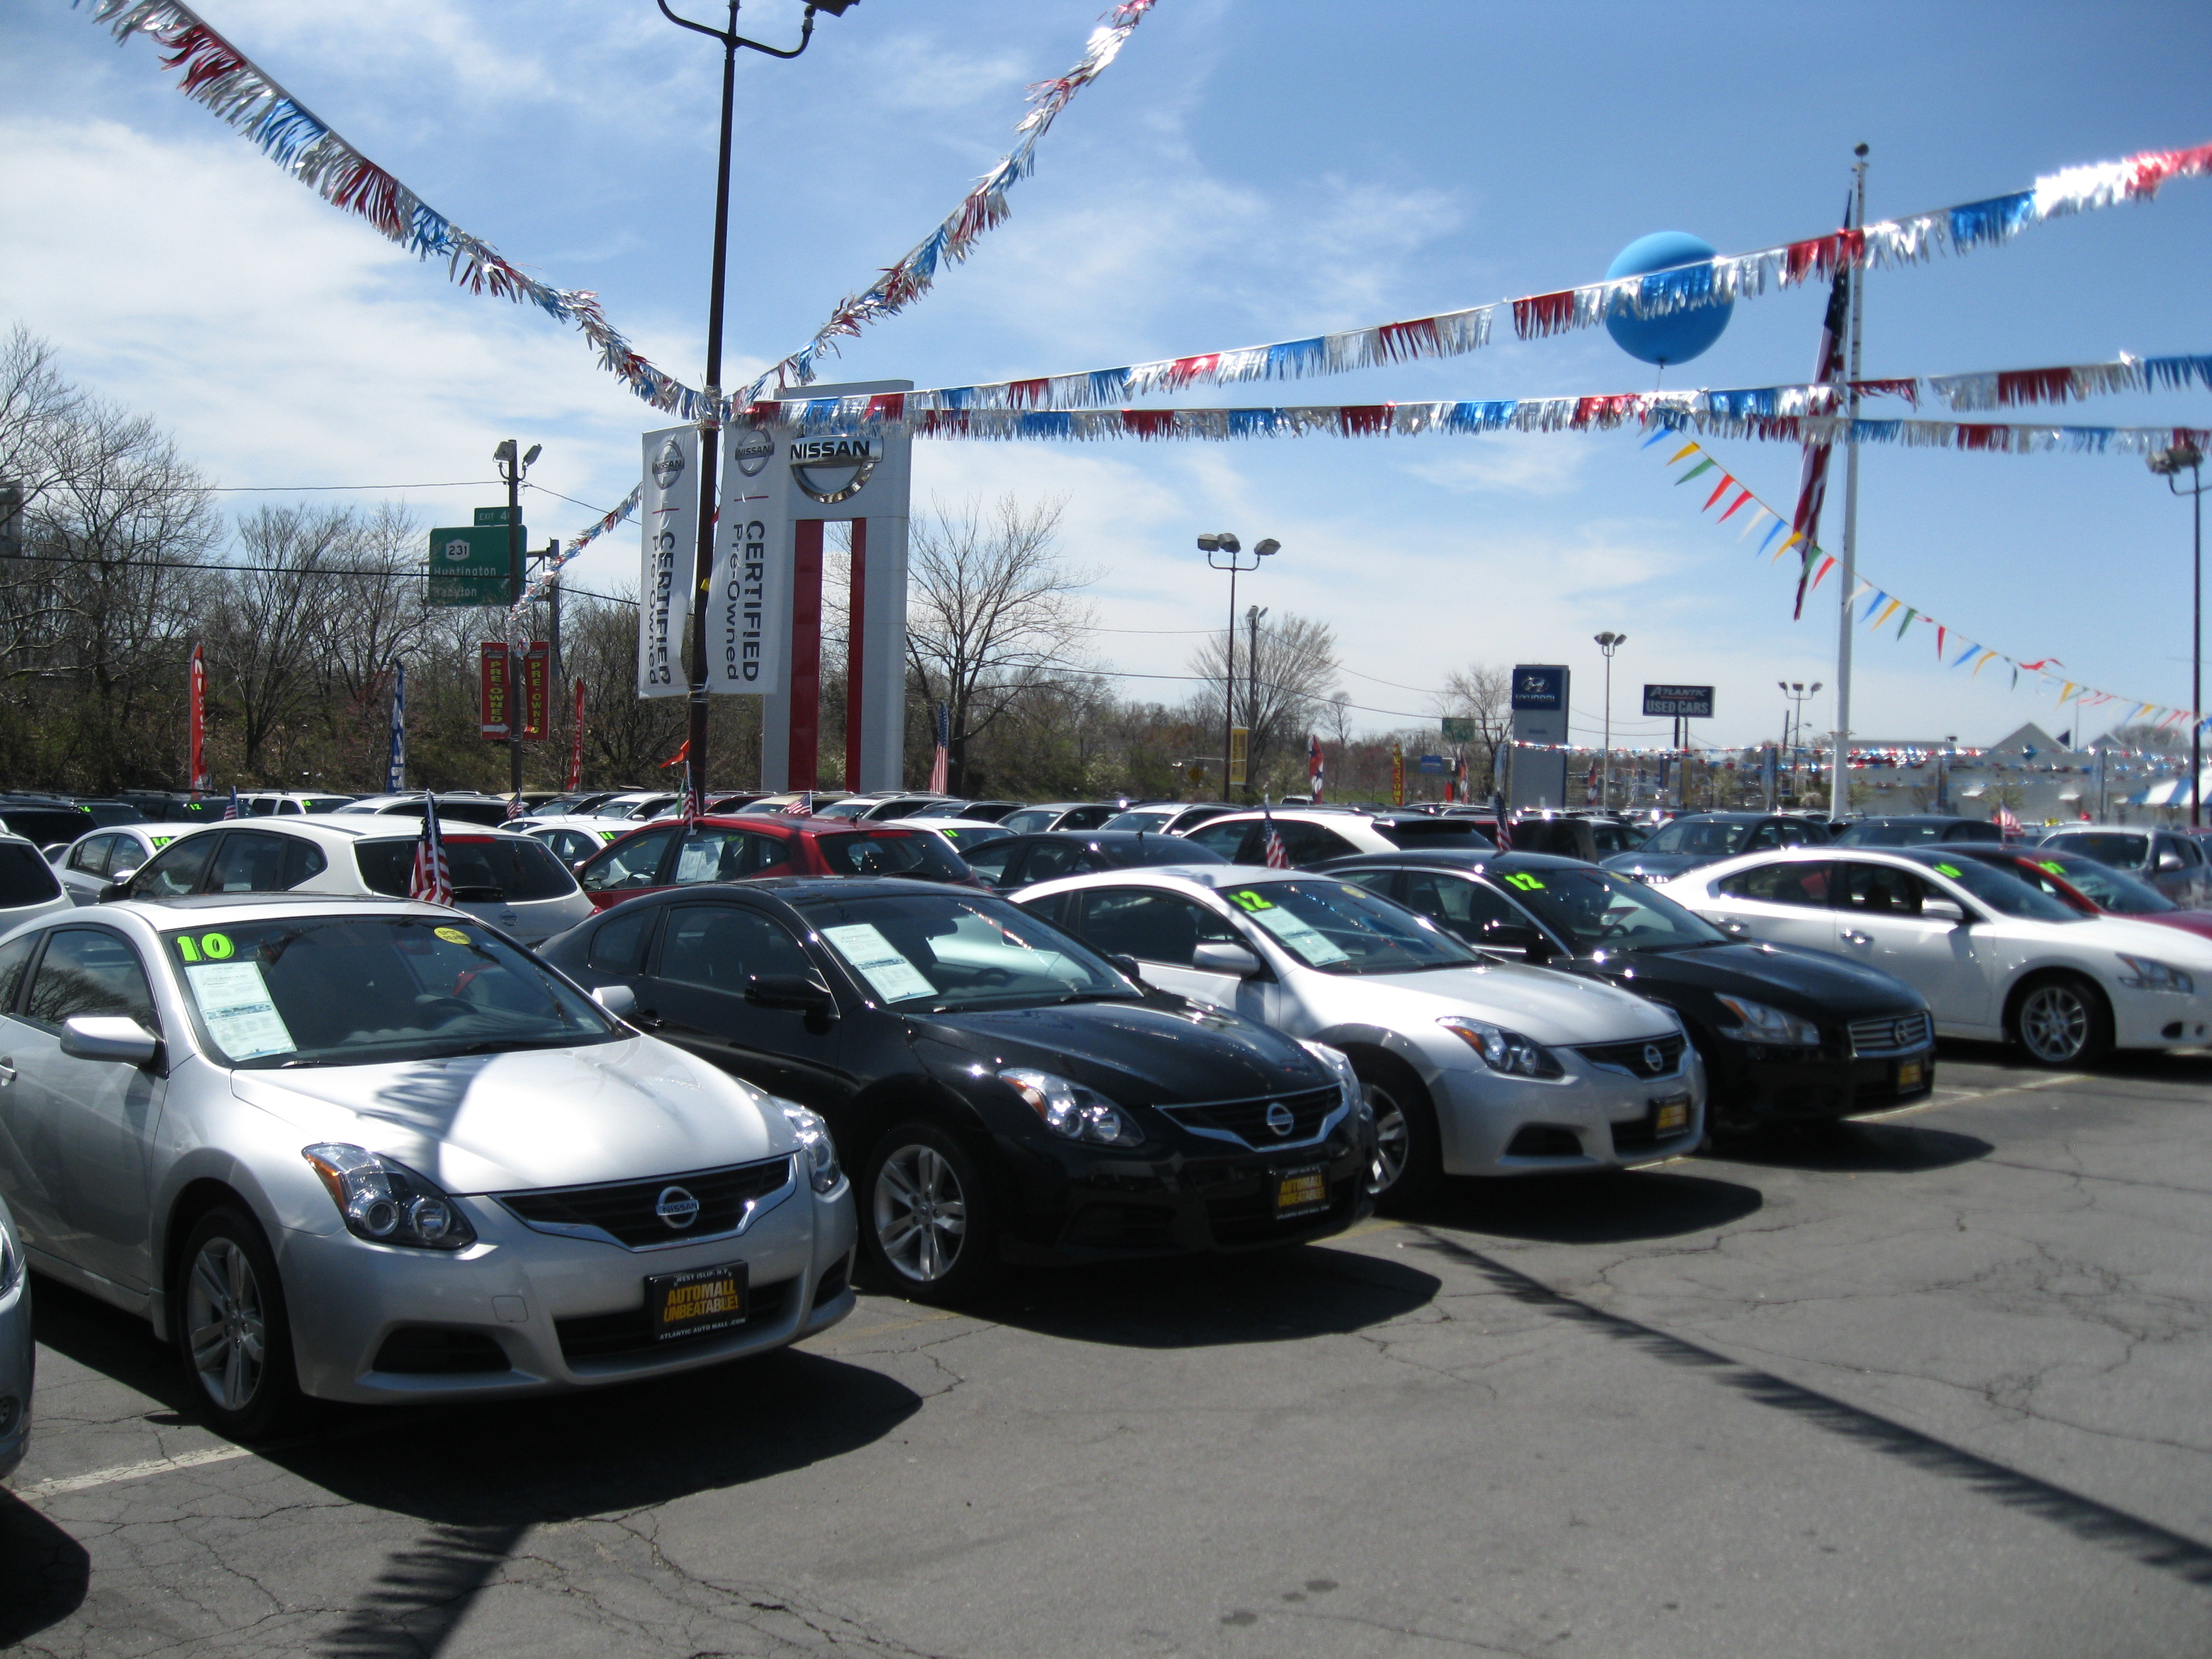 Lovely Atlantic Nissan 1521 Sunrise Highway Bay Shore, NY Car Service   MapQuest